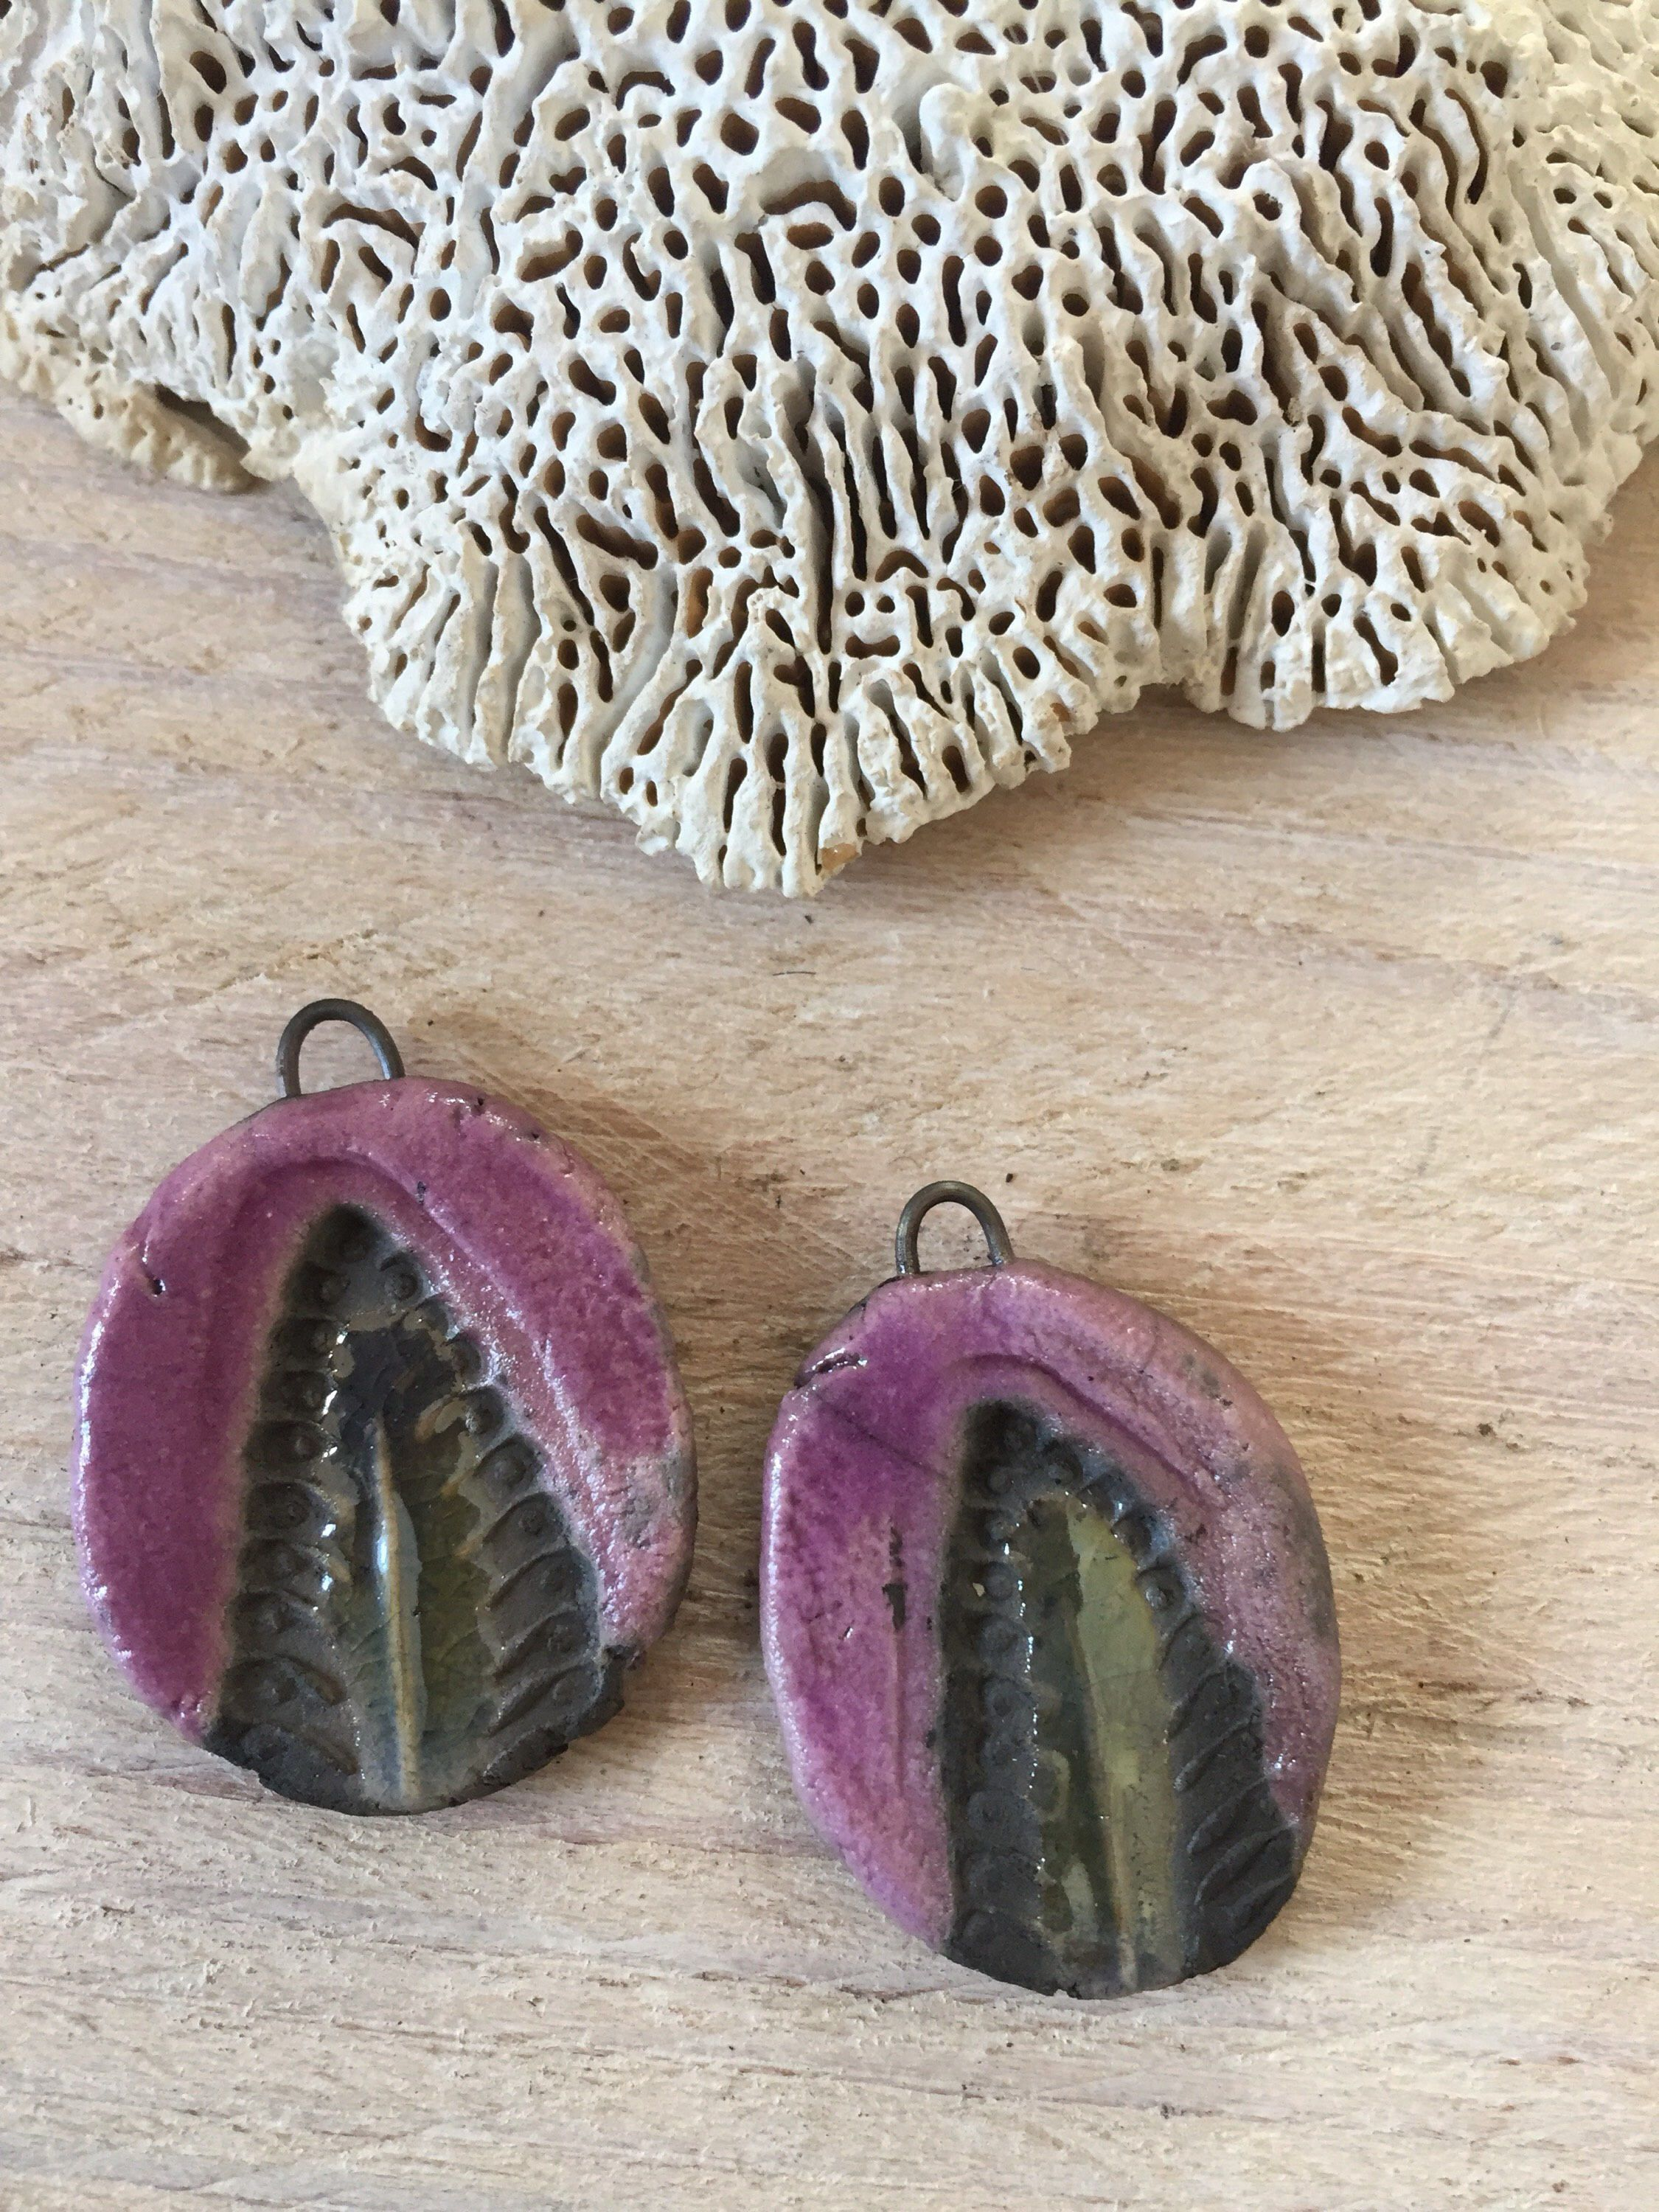 Set of 2 ceramic raku pendants by histoiredapprets on etsy https set of 2 ceramic raku pendants by histoiredapprets on etsy https aloadofball